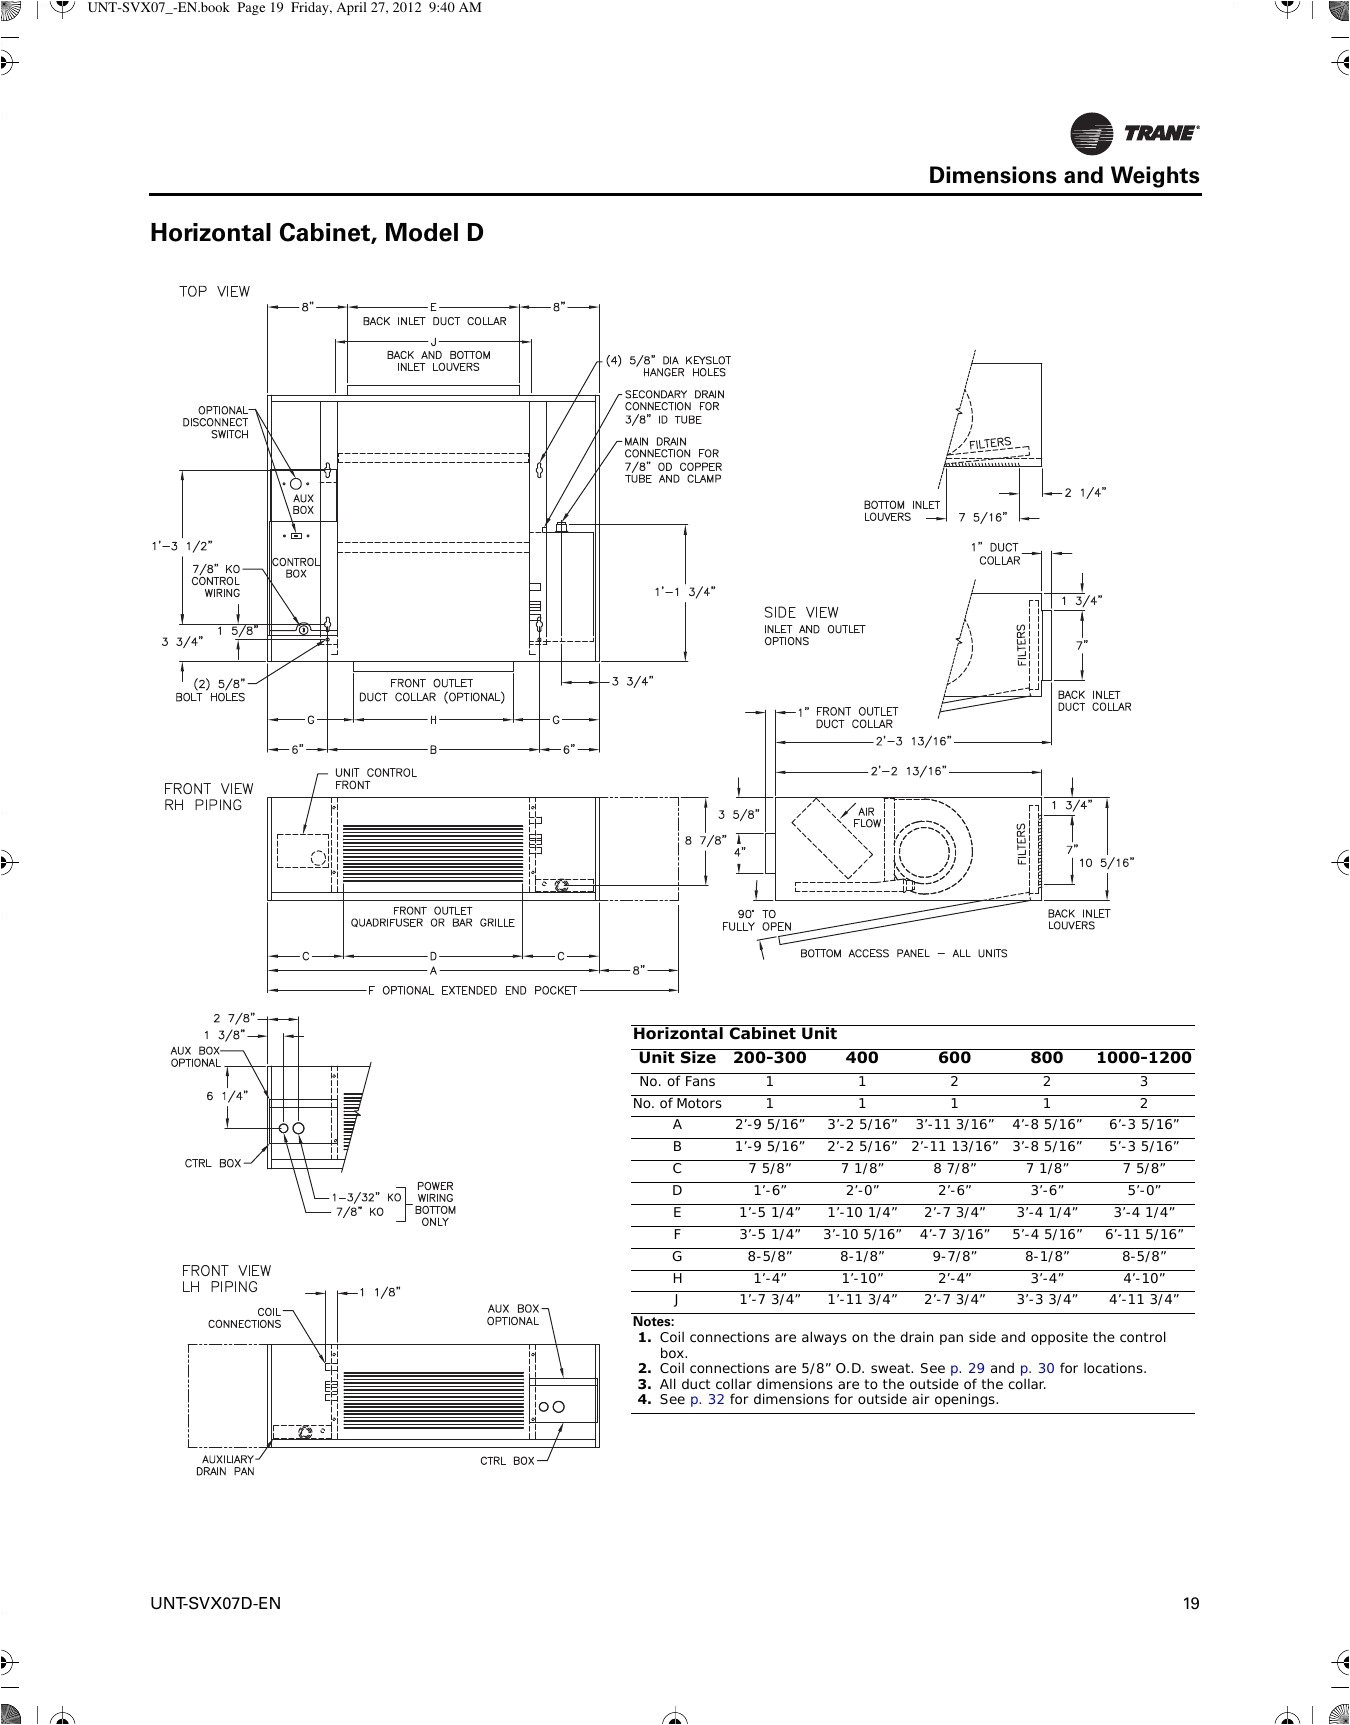 8 bazooka tube wiring diagram beautiful grundfos pump wiring diagram fresh central heating wiring diagram